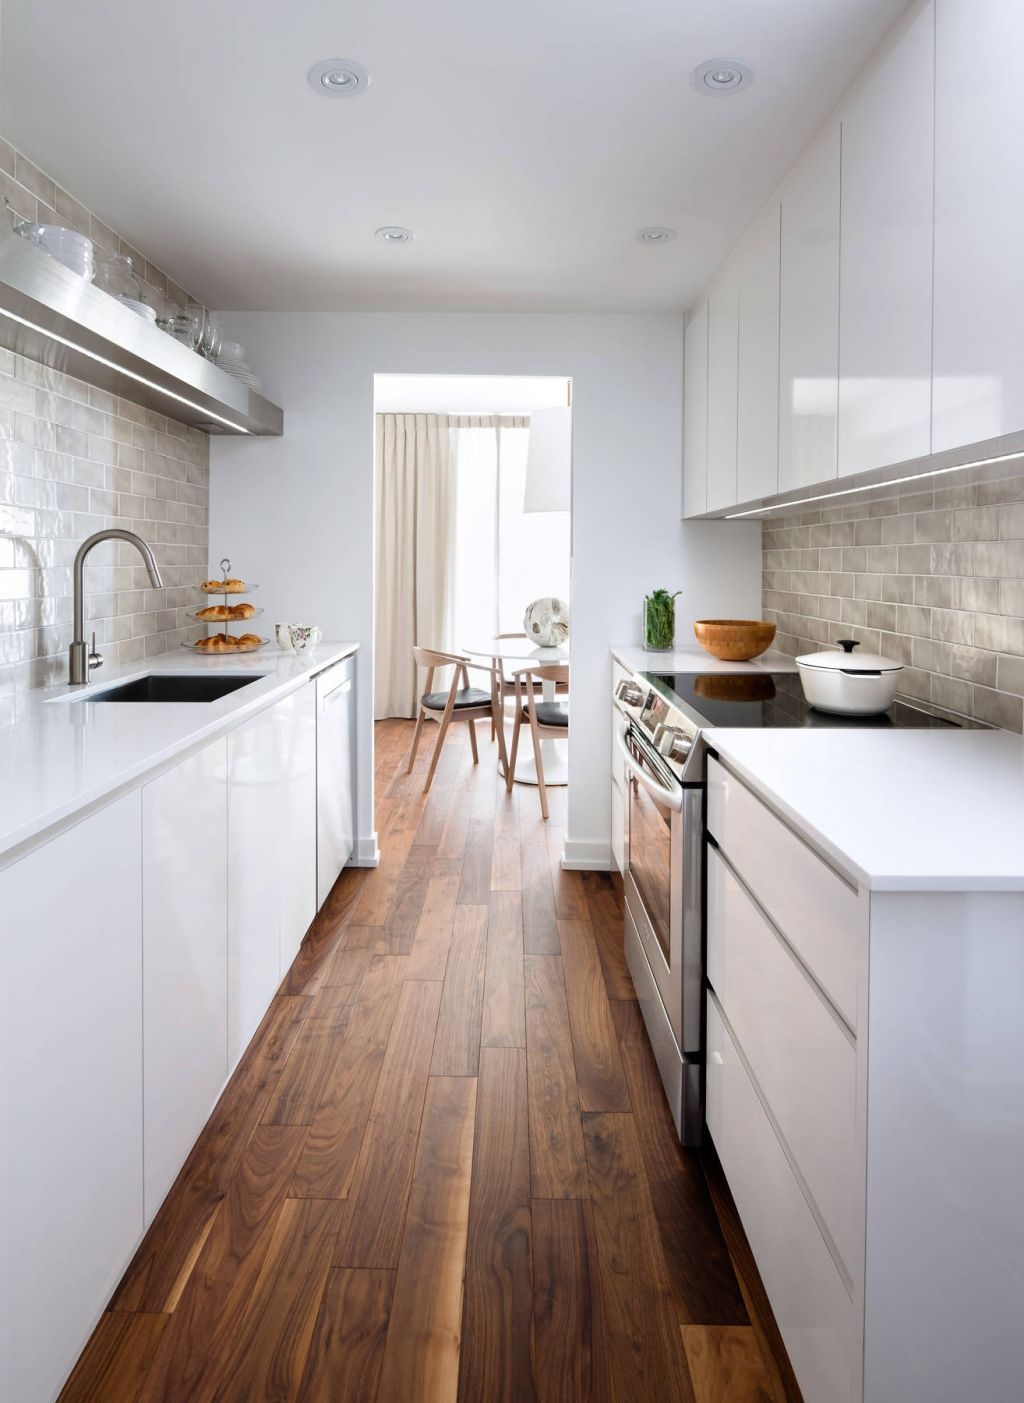 √ 24+ Exceptional Galley Kitchen Mid Century To Channel Your Inner Minimalist With #opengalleykitchen